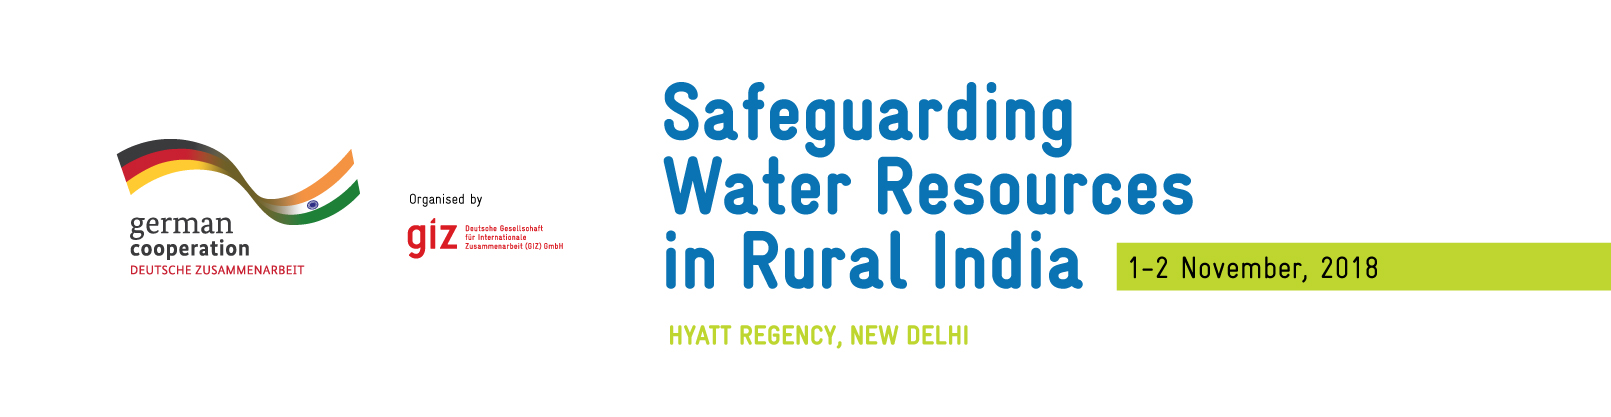 Safeguarding Water Resources in Rural India